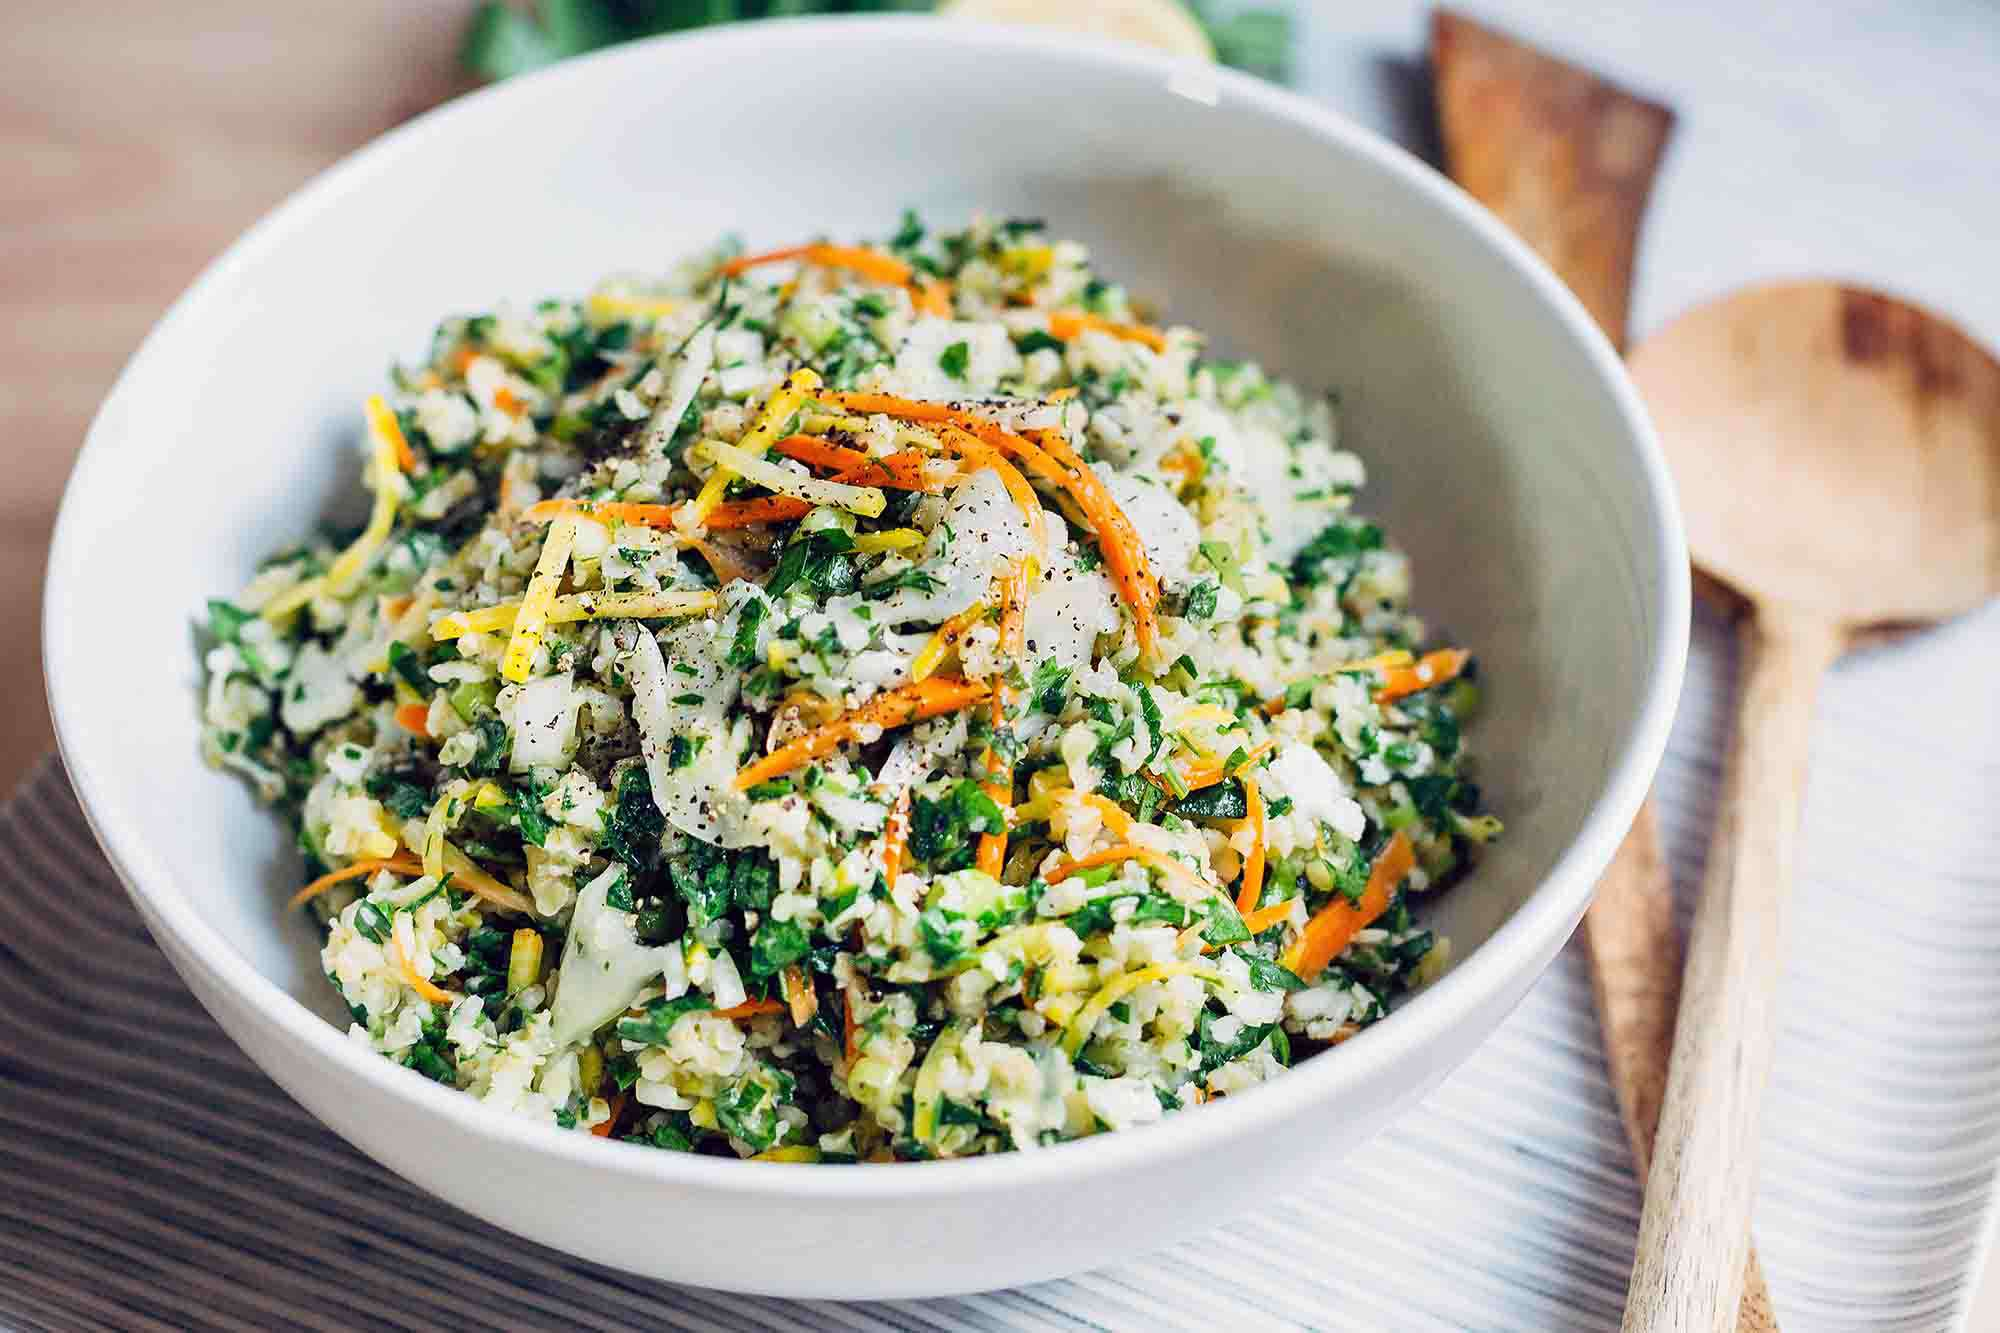 Autumn Tabbouleh with Cauliflower, Carrots, and Golden Beets